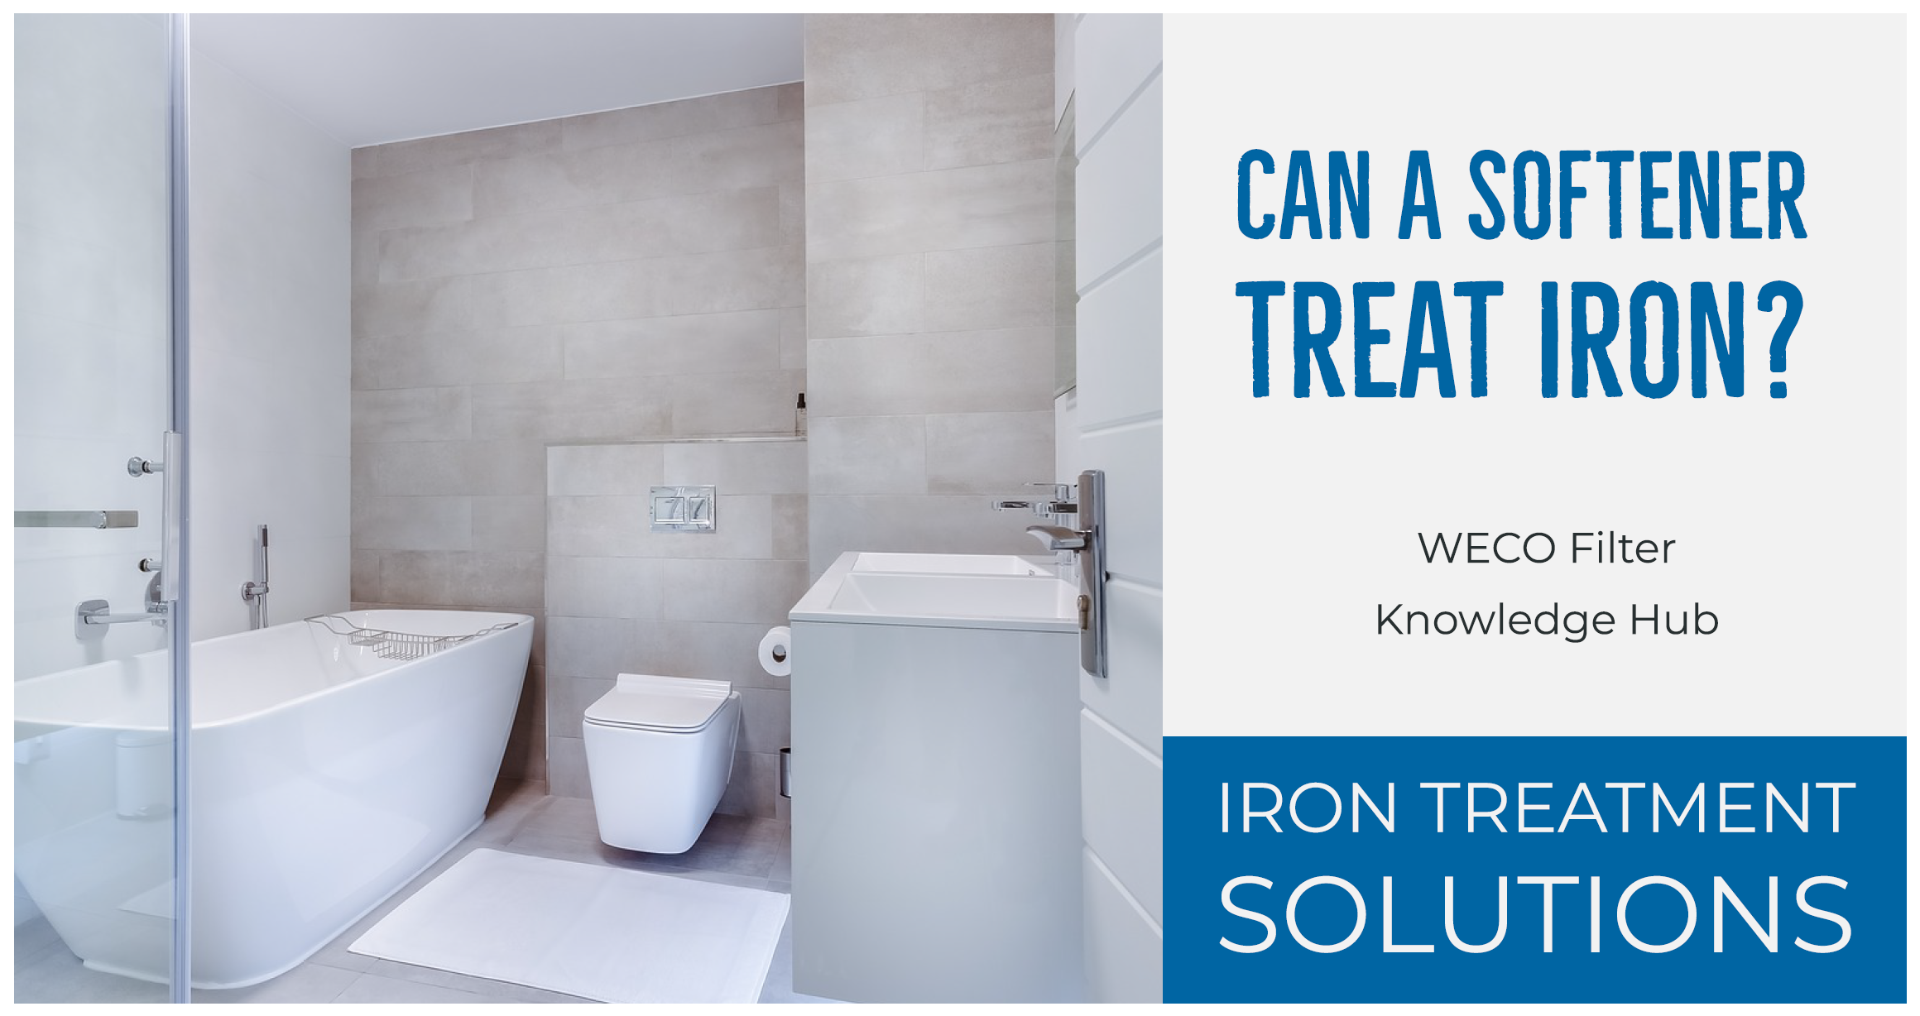 Treating Iron with a Softener